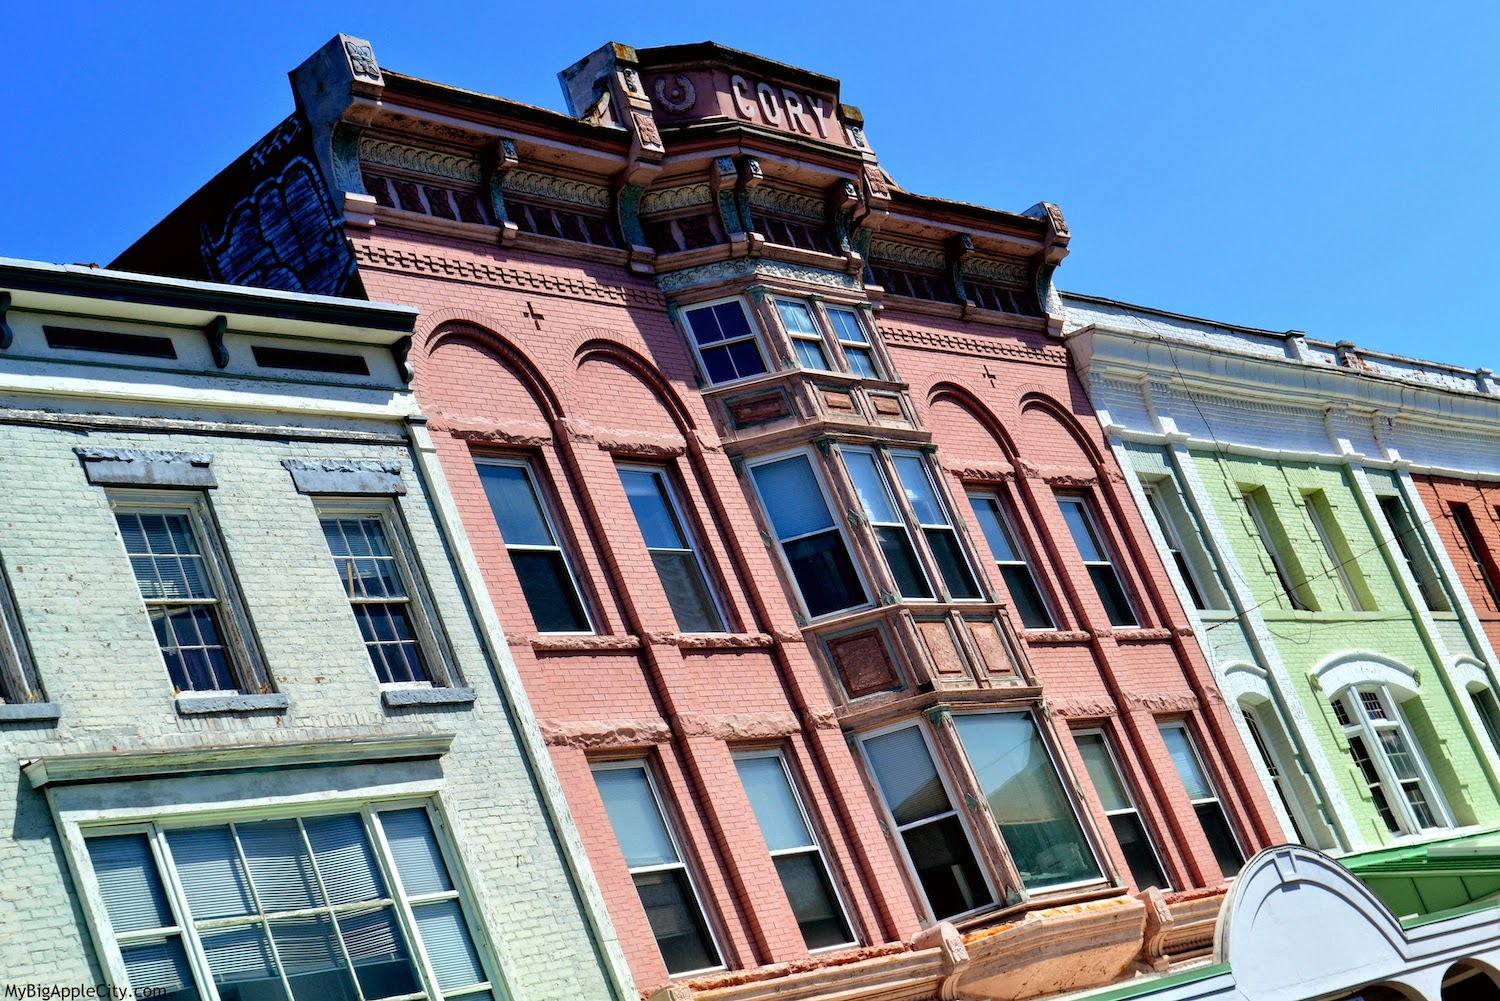 kingston-colored-architecture-ny-travelblog-usa